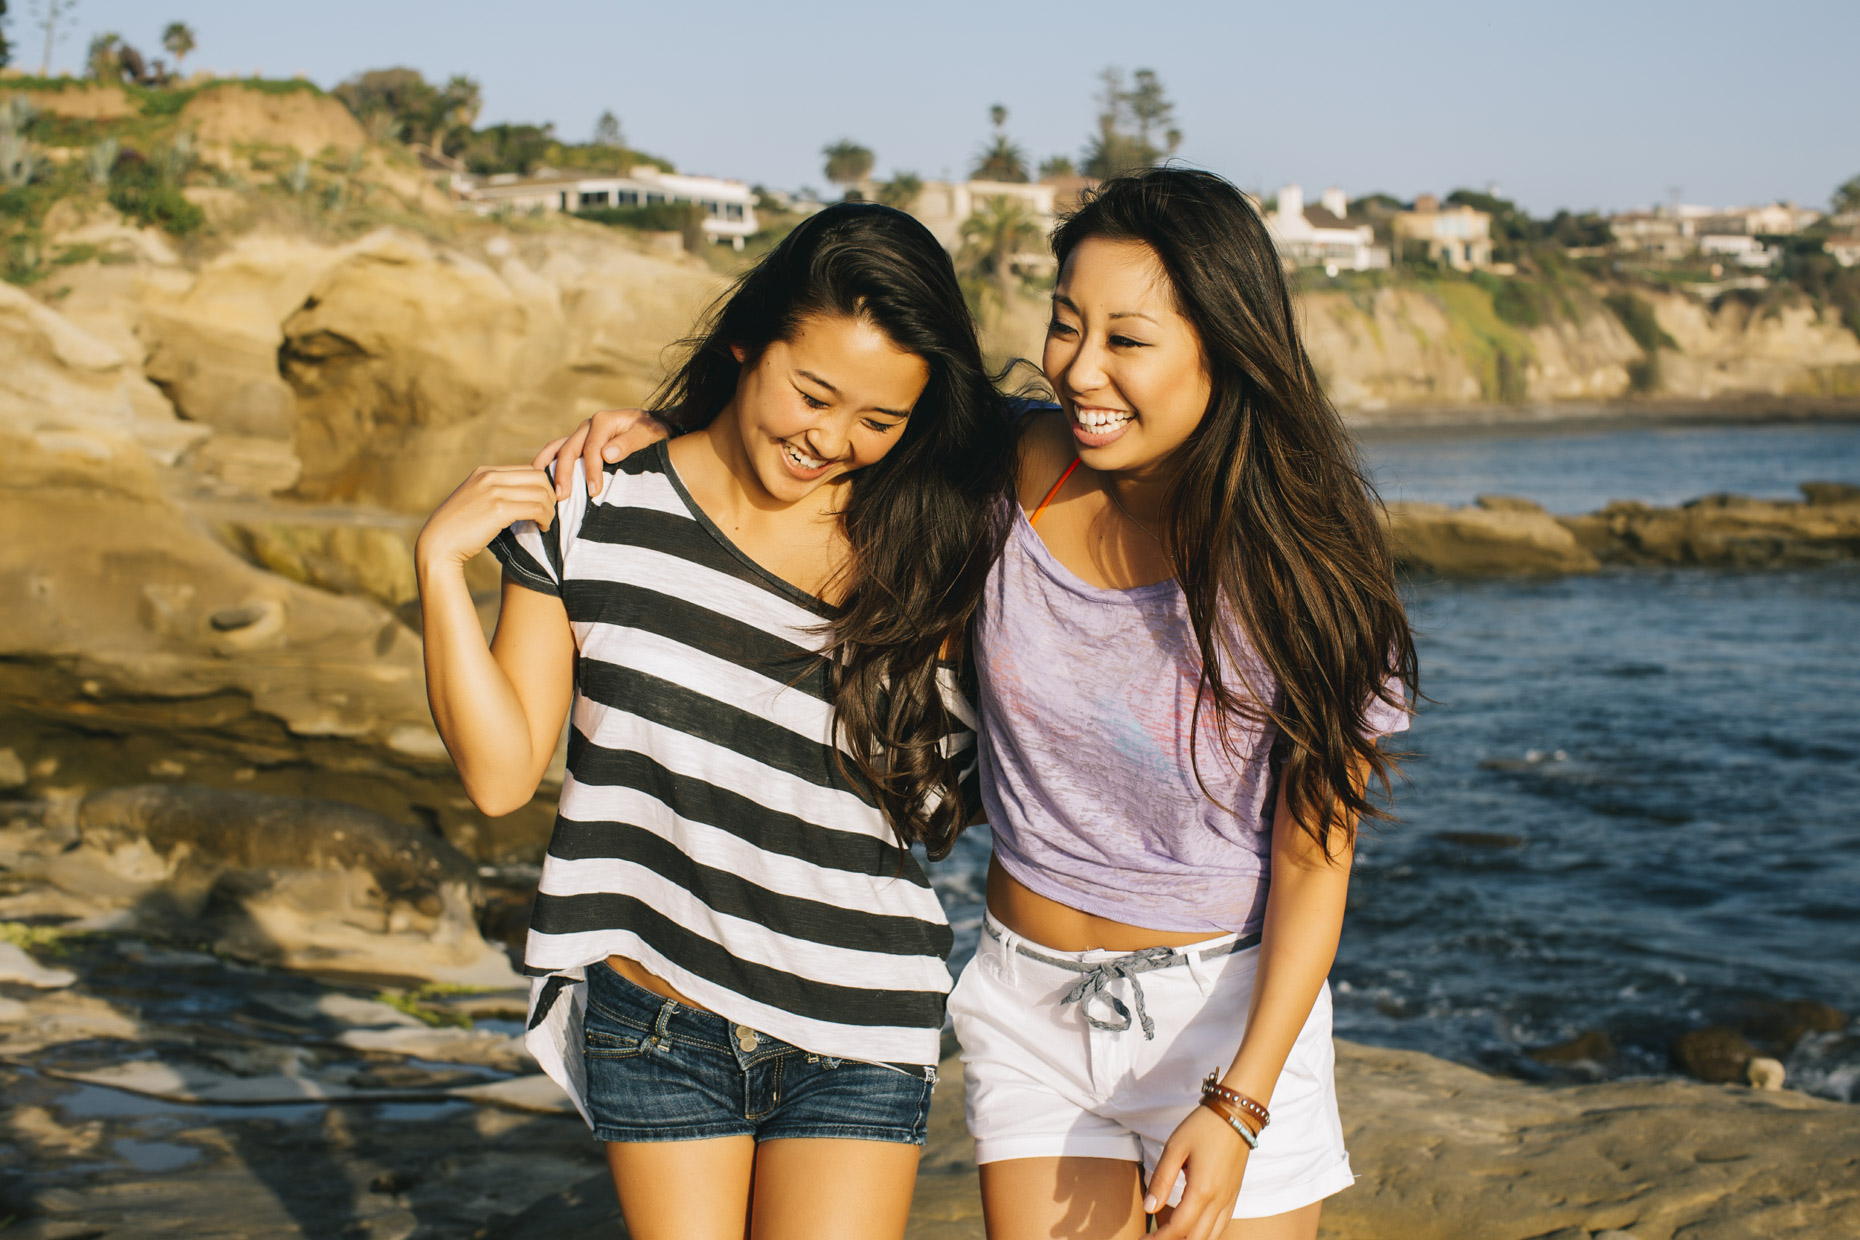 Female friends hugging and laughing at beach